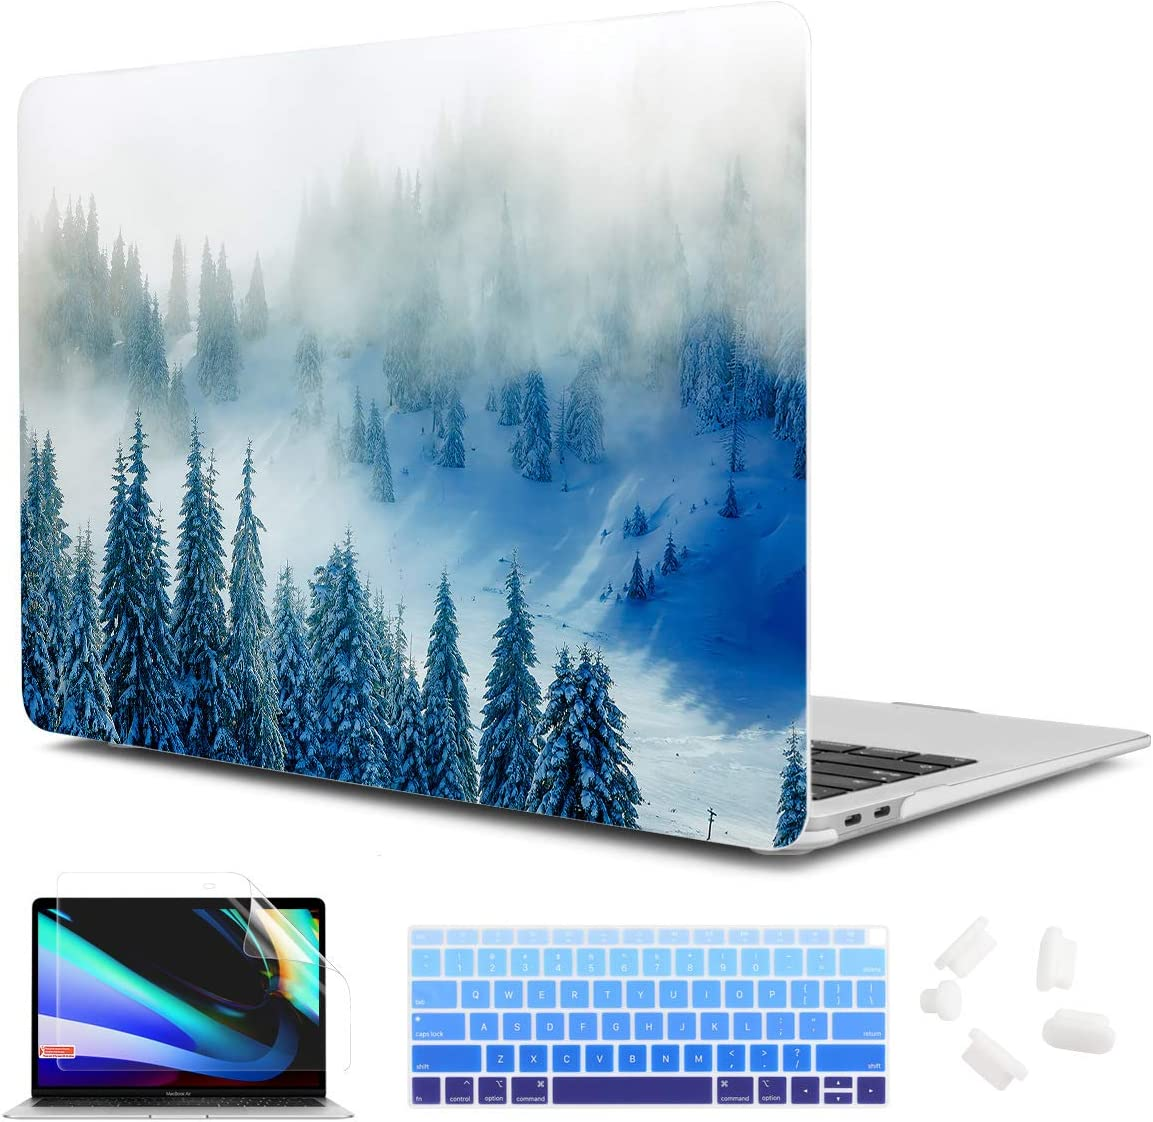 CiSoo Forest Case for MacBook Air 13 inch 2020 2019 2018 Release Model A2337 M1 A2179 A1932, Matte Laptop Hard Shell Case Cover with Match Color Keyboard Cover & Screen Protector for Air 13''- Forest